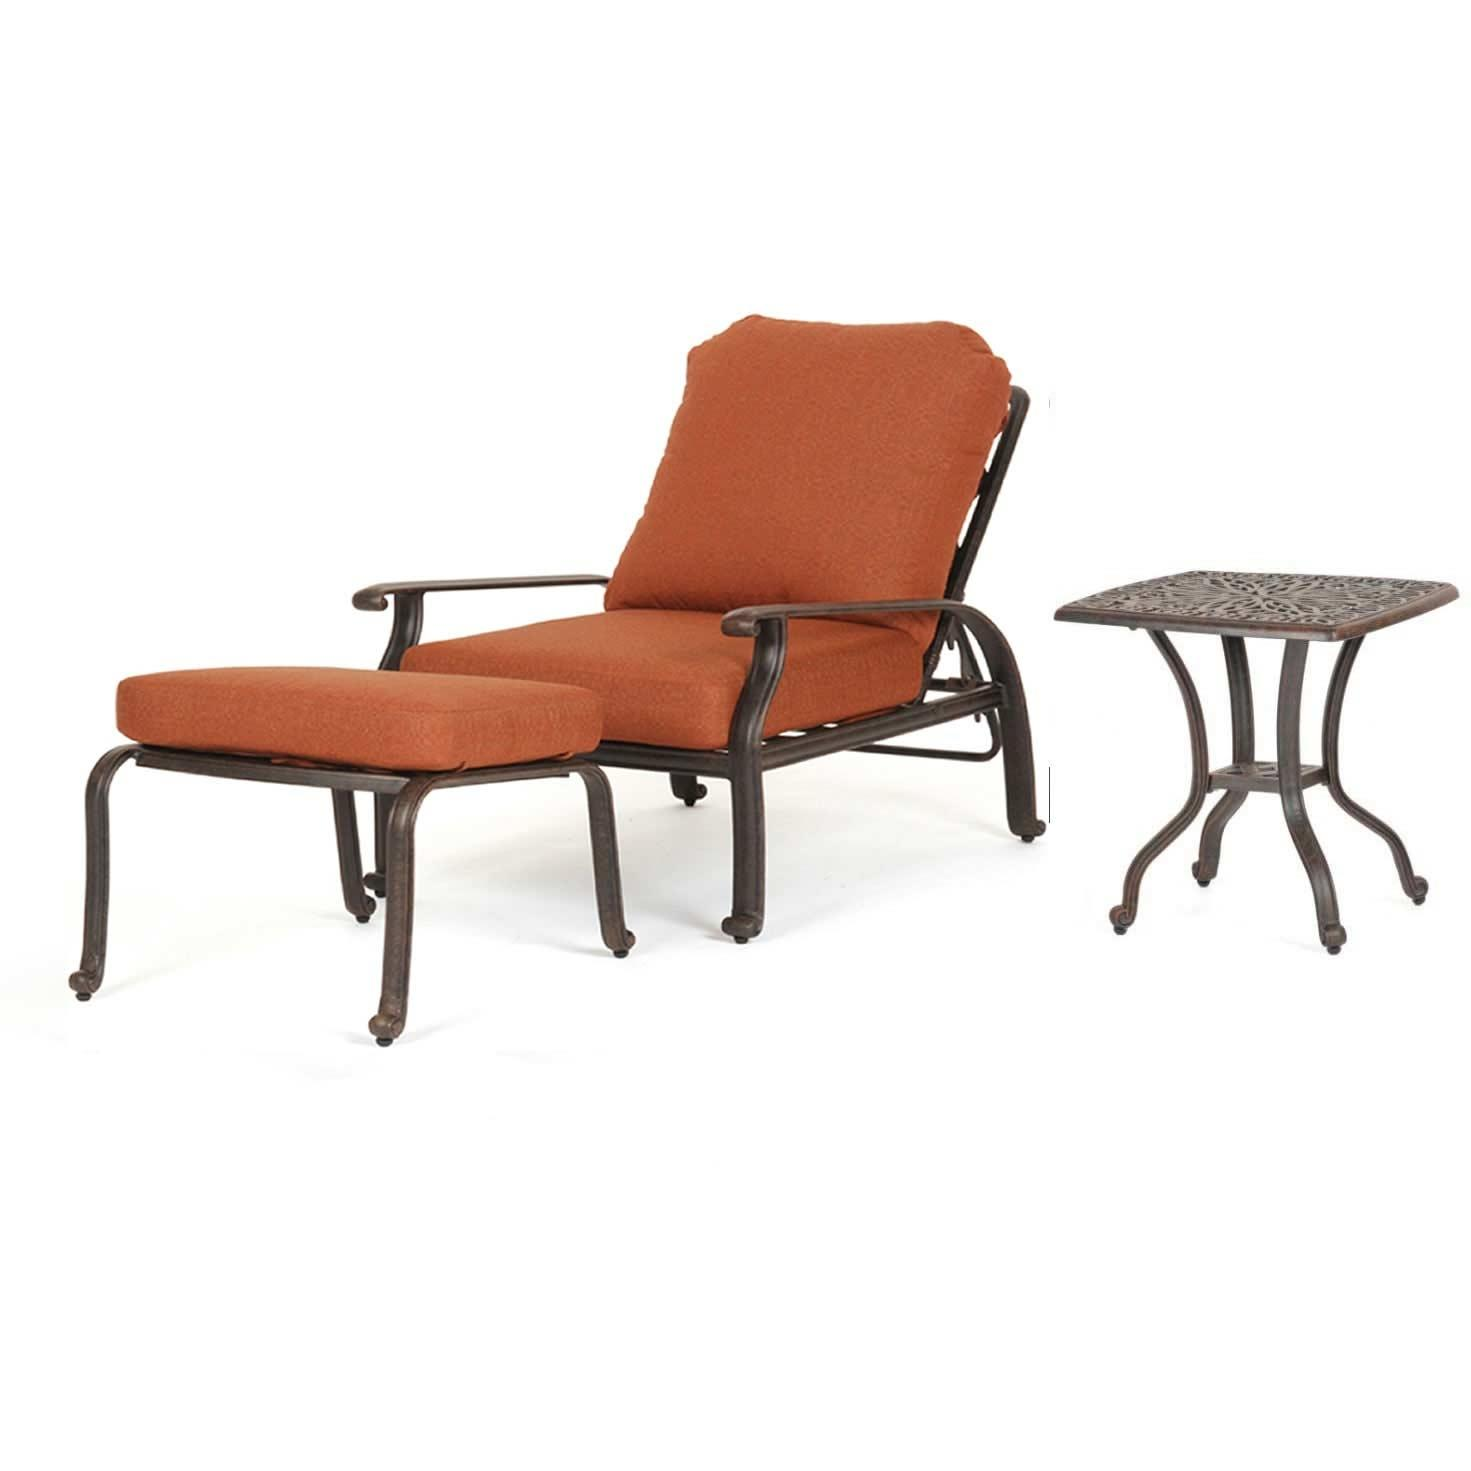 Caluco Florence Aluminum Lounge Set With Adjustable Chair